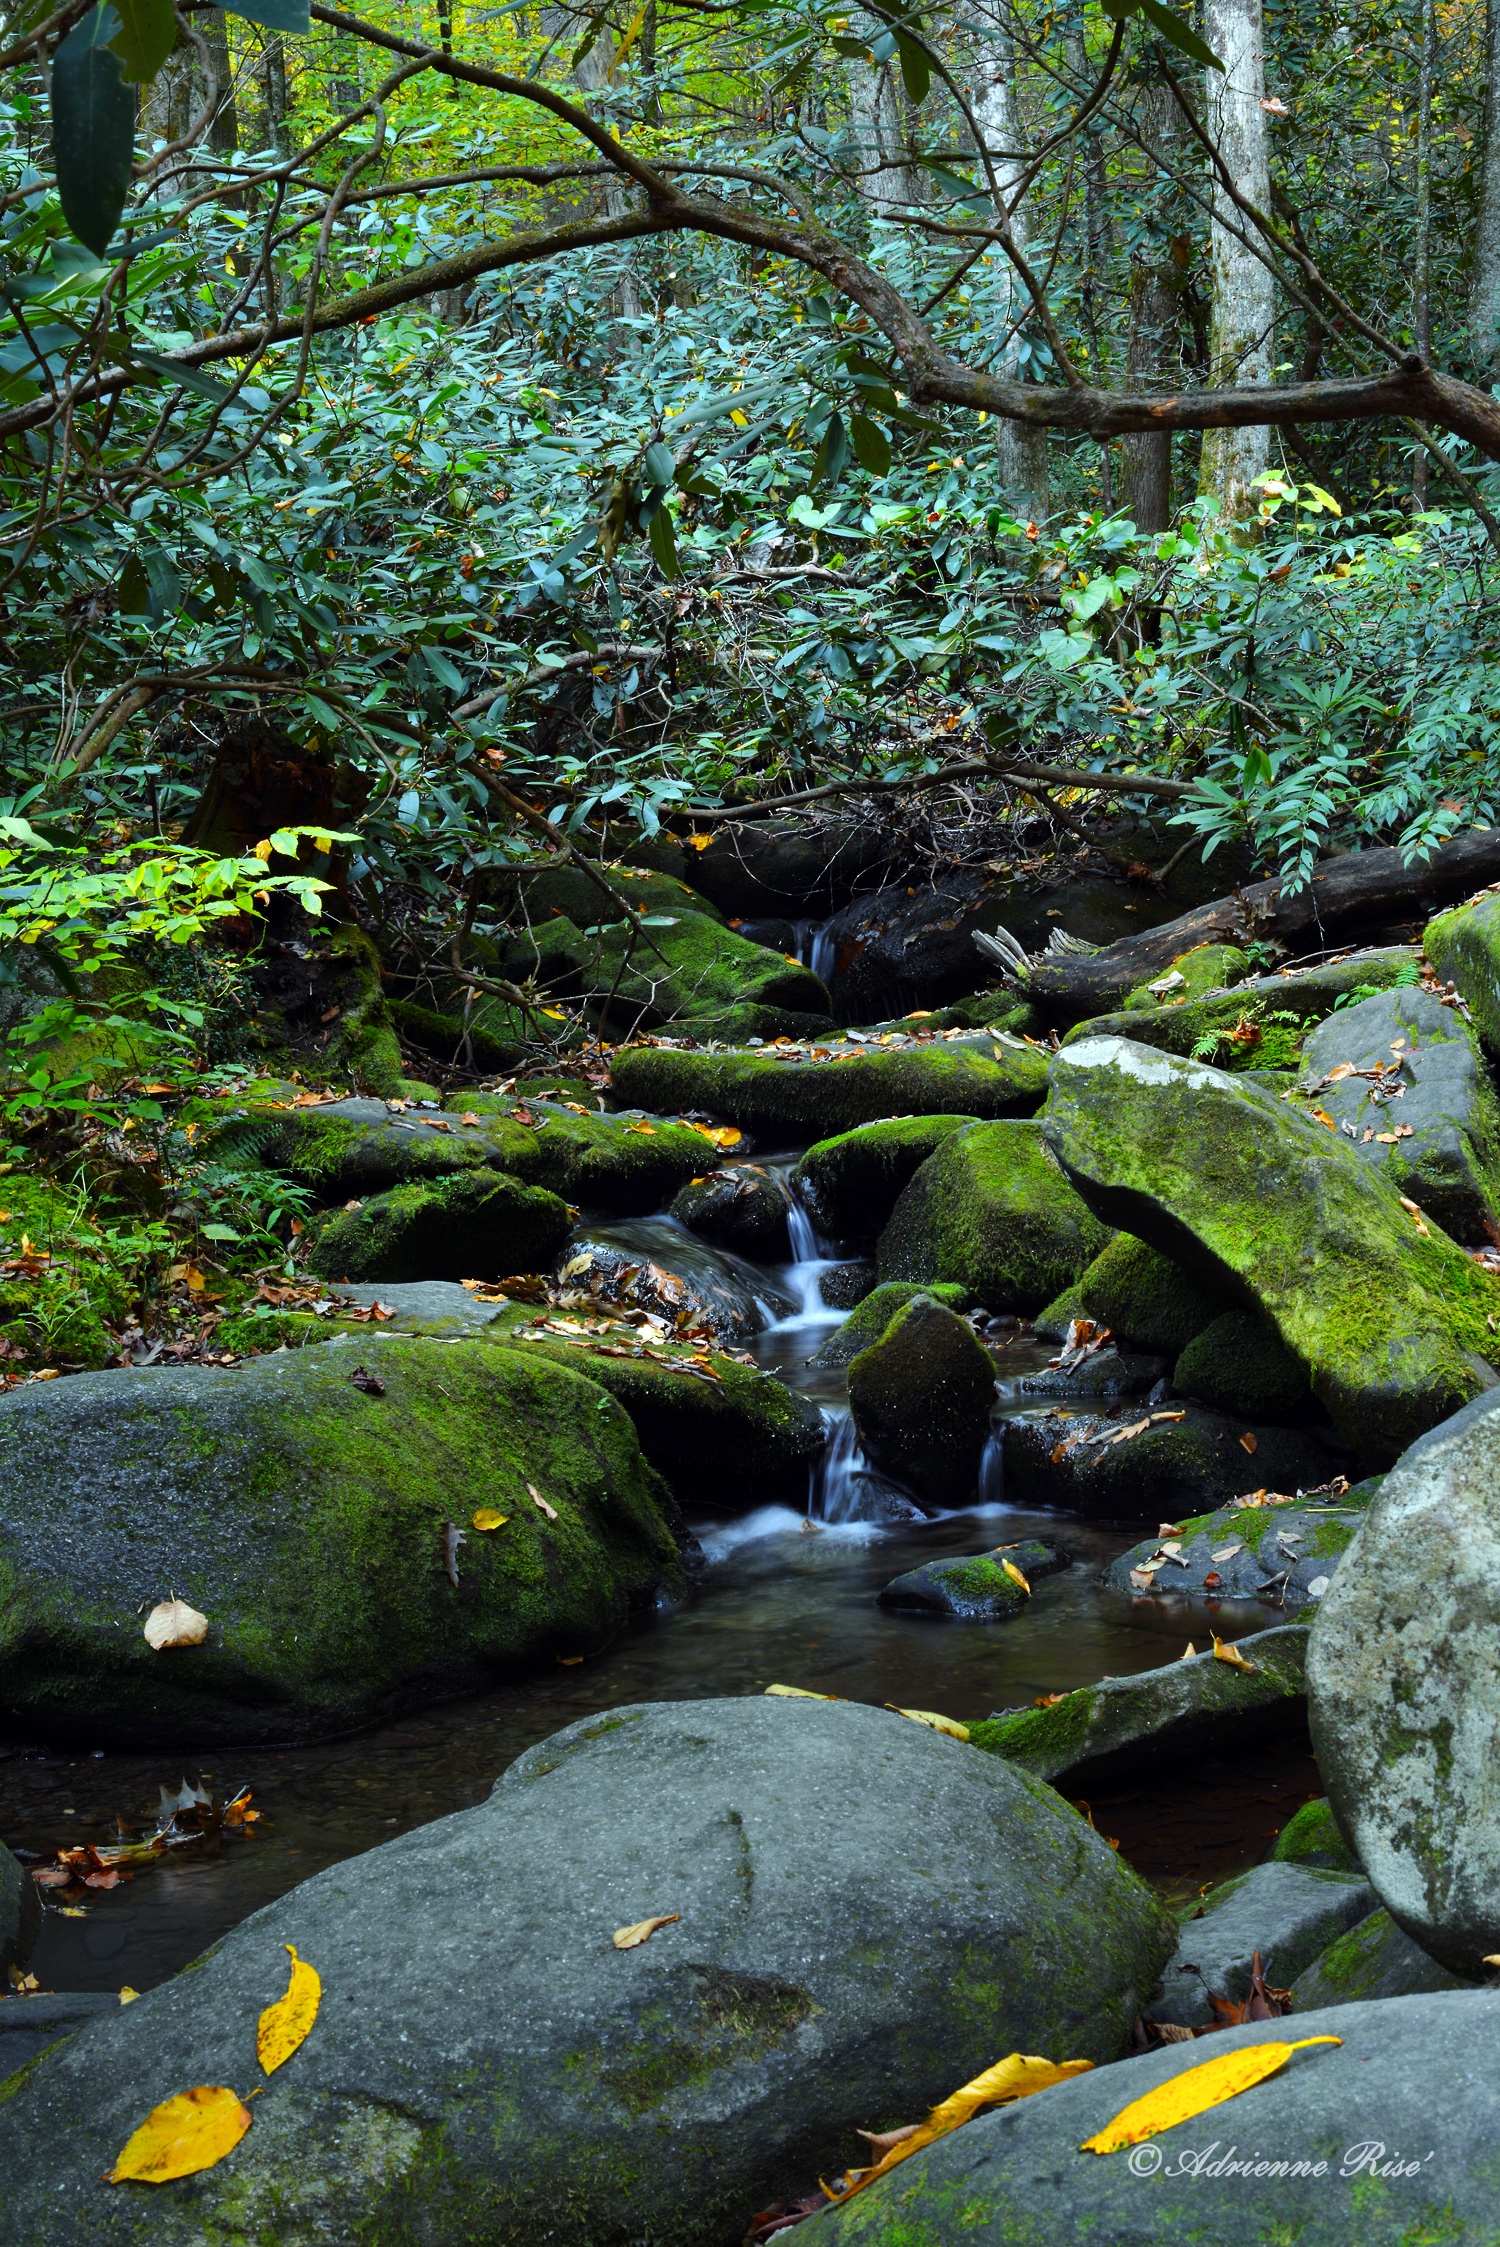 Small waterfall, Smokey Mountain National Park: Nkon D-600 at slow shutter speed